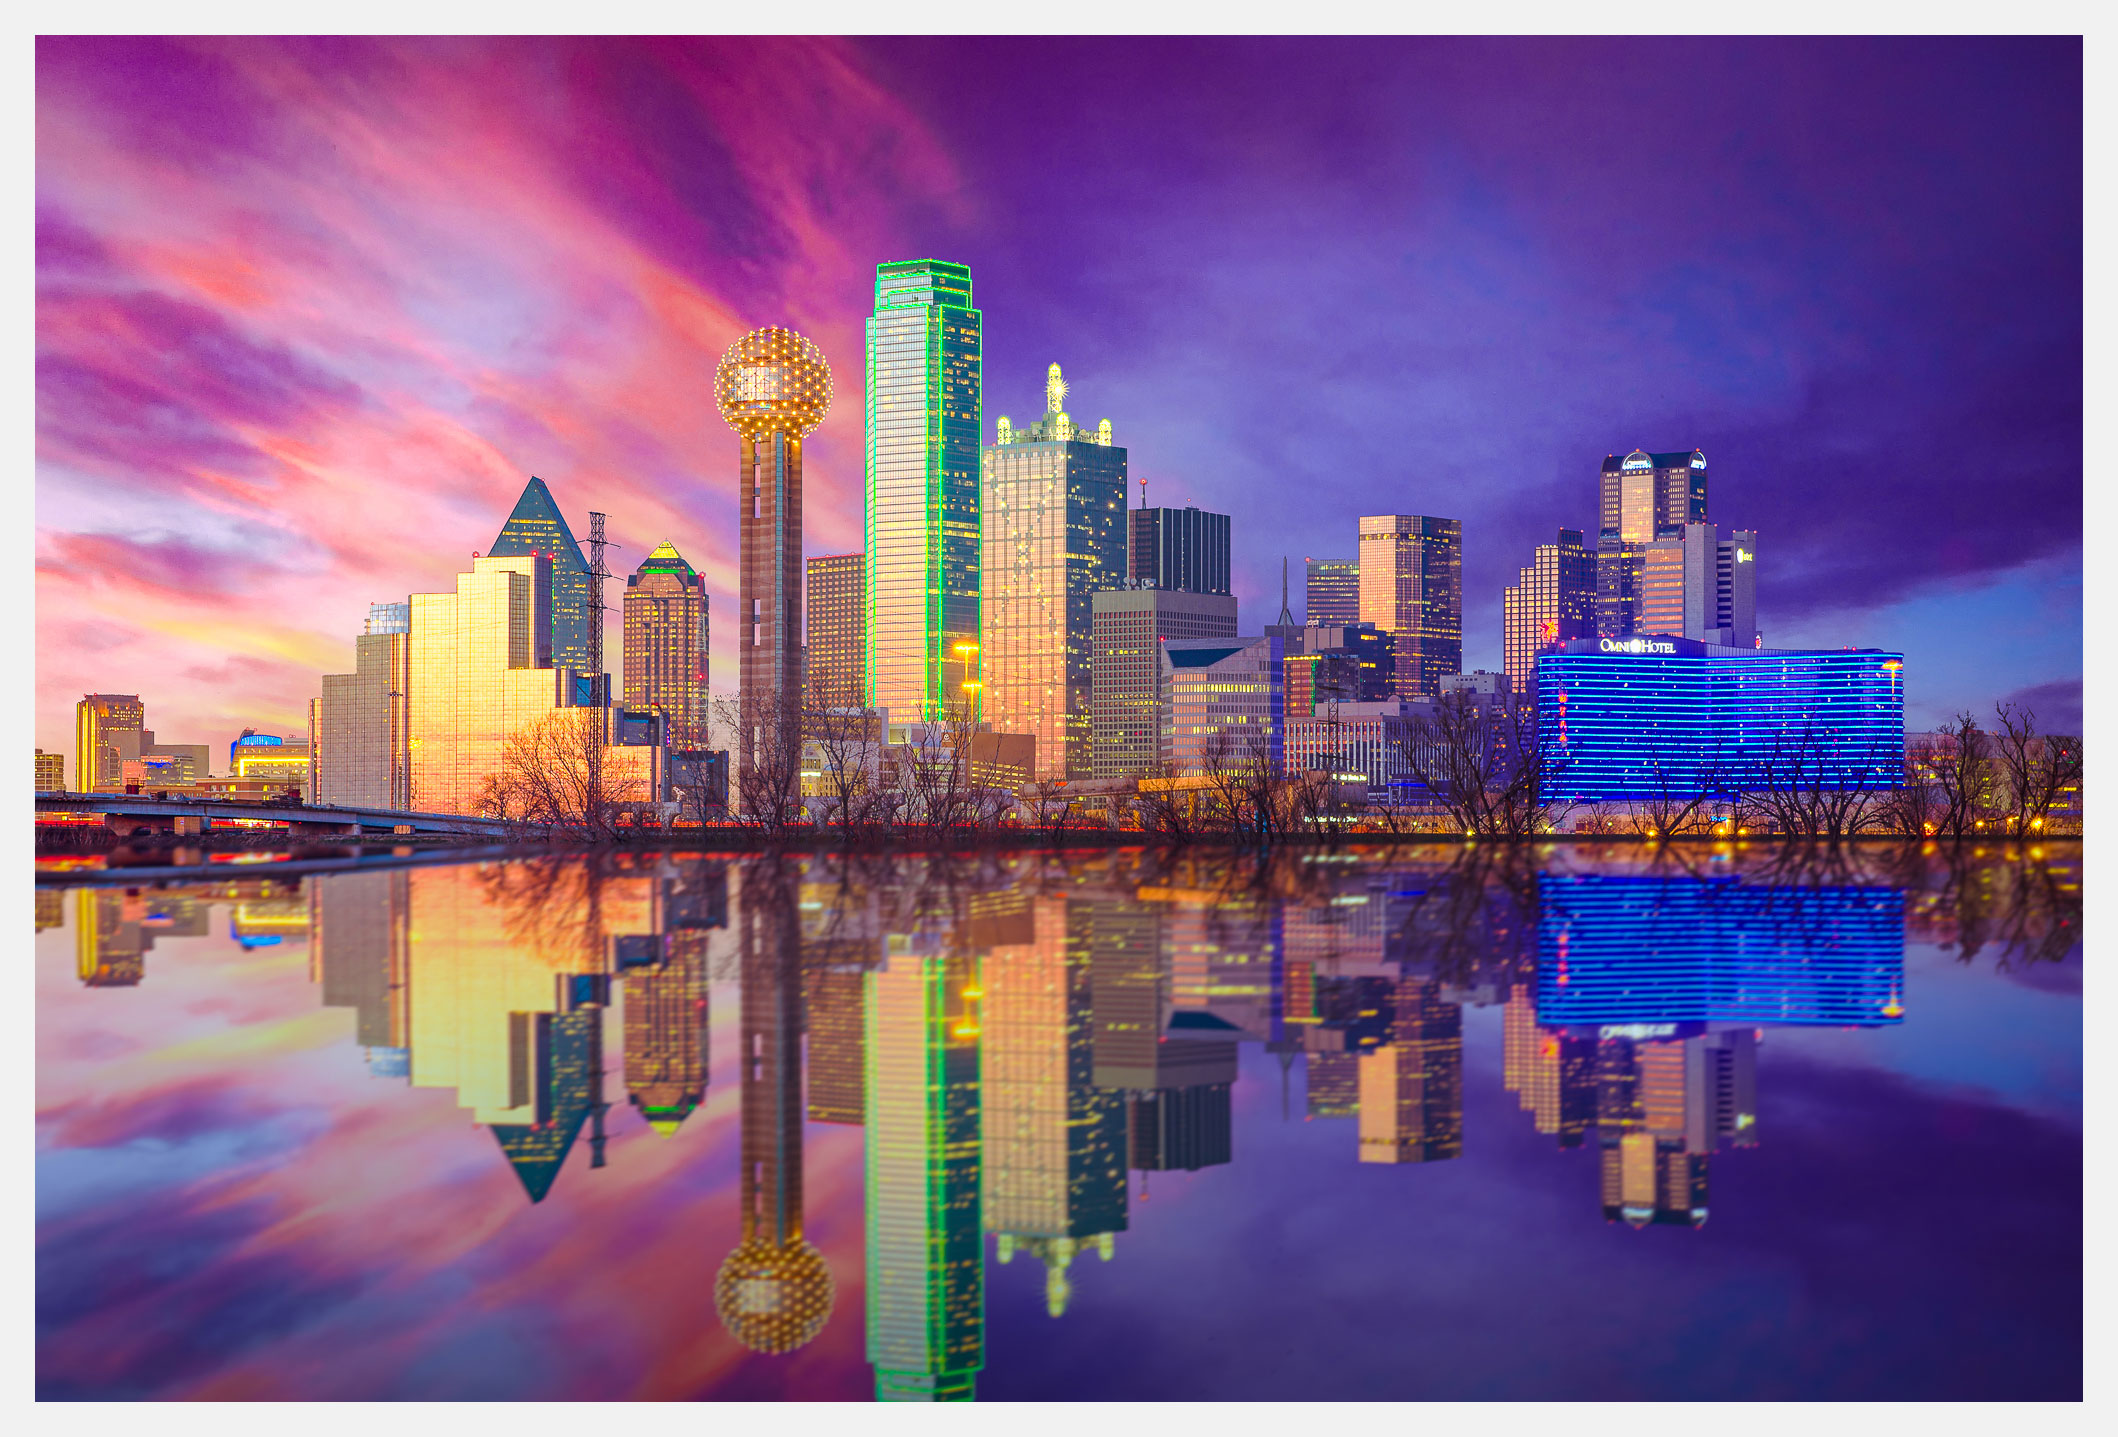 Dallas Skyline at Night With Reflection